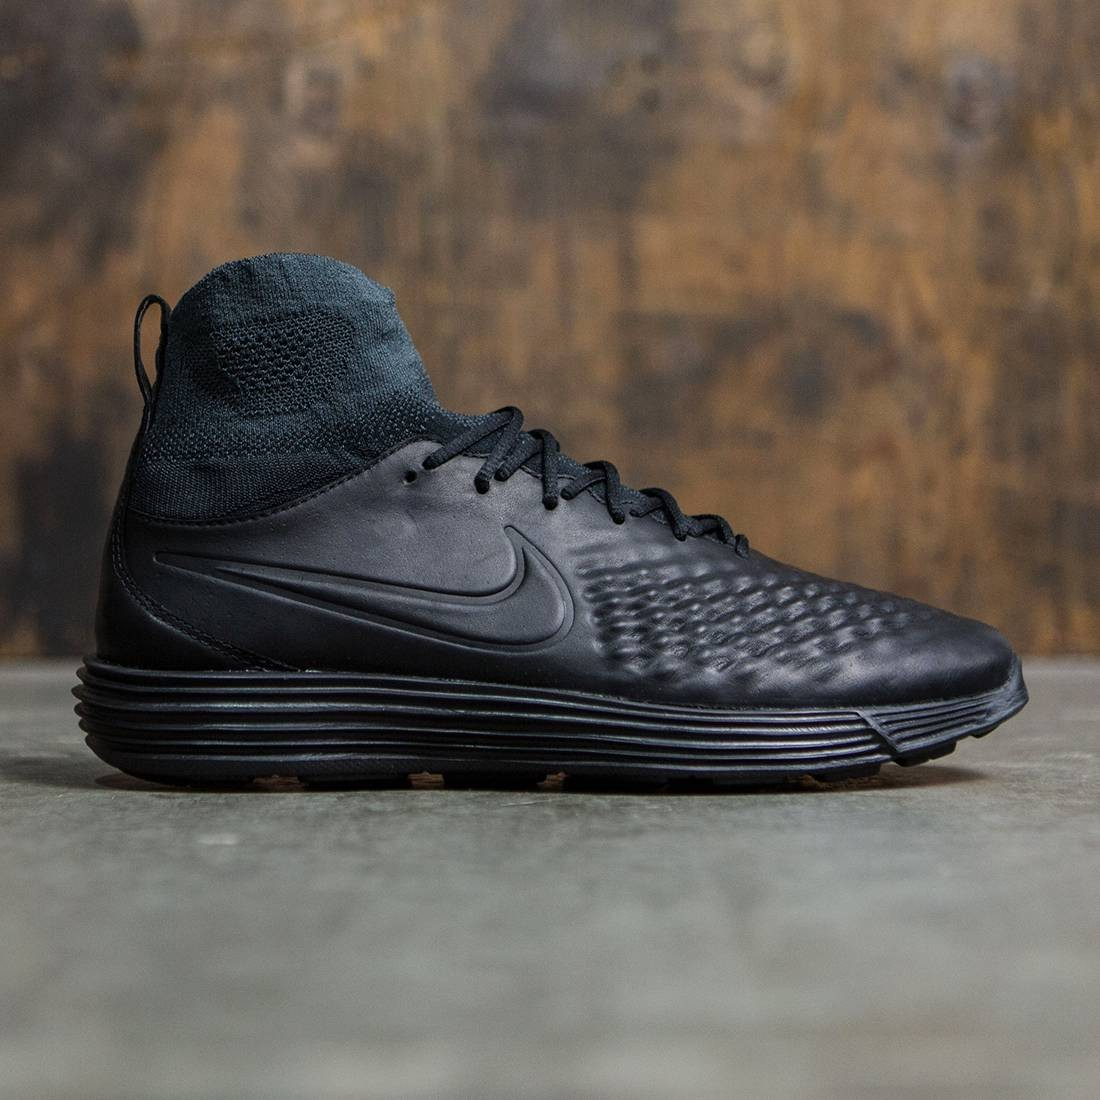 check out d8b51 19fc9 Nike Men Lunar Magista Ii Flyknit (black / black-anthracite-white)